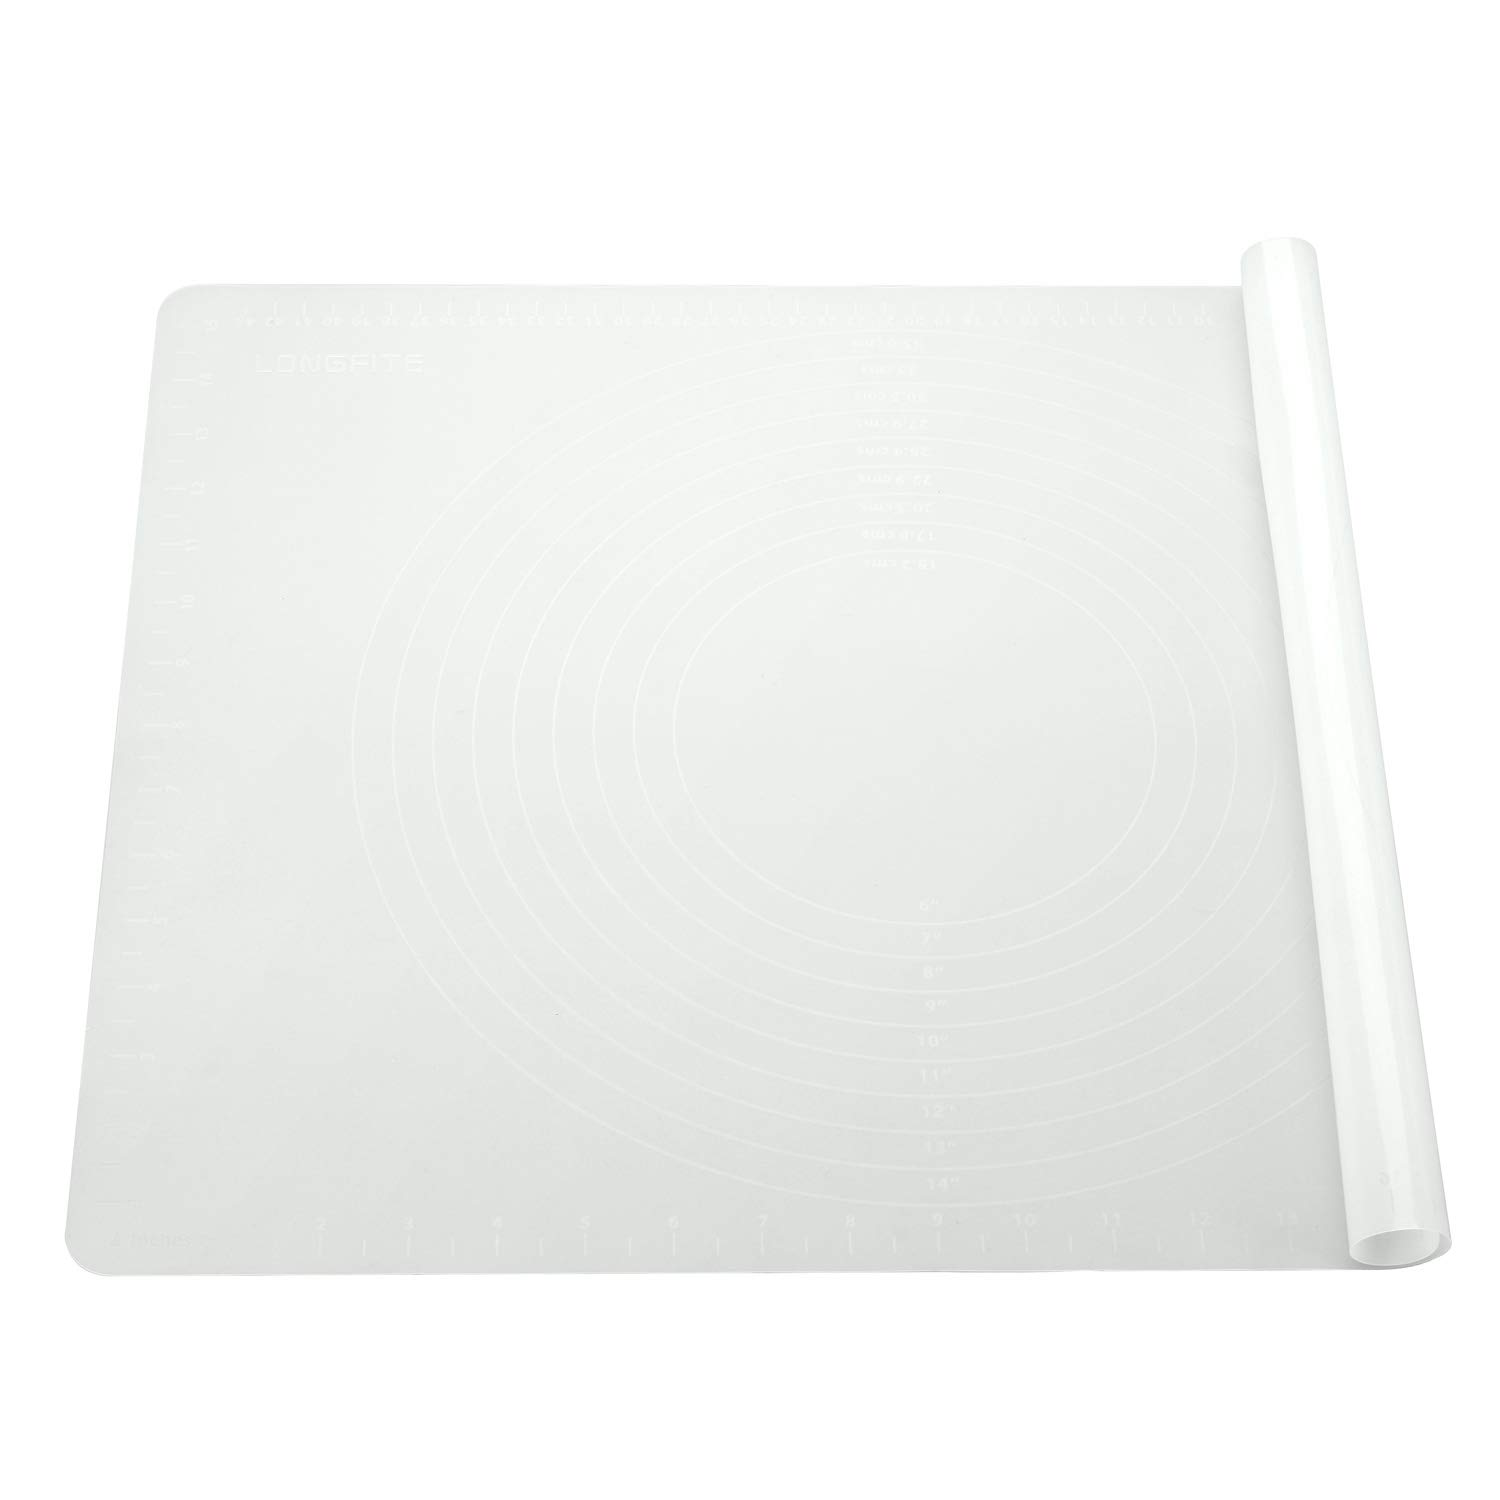 Silicone Baking Mat for Pastry Rolling Dough Mats Large Nonstick and Nonslip with Measurements,Dining Table Placemat 20'' by 16'', White